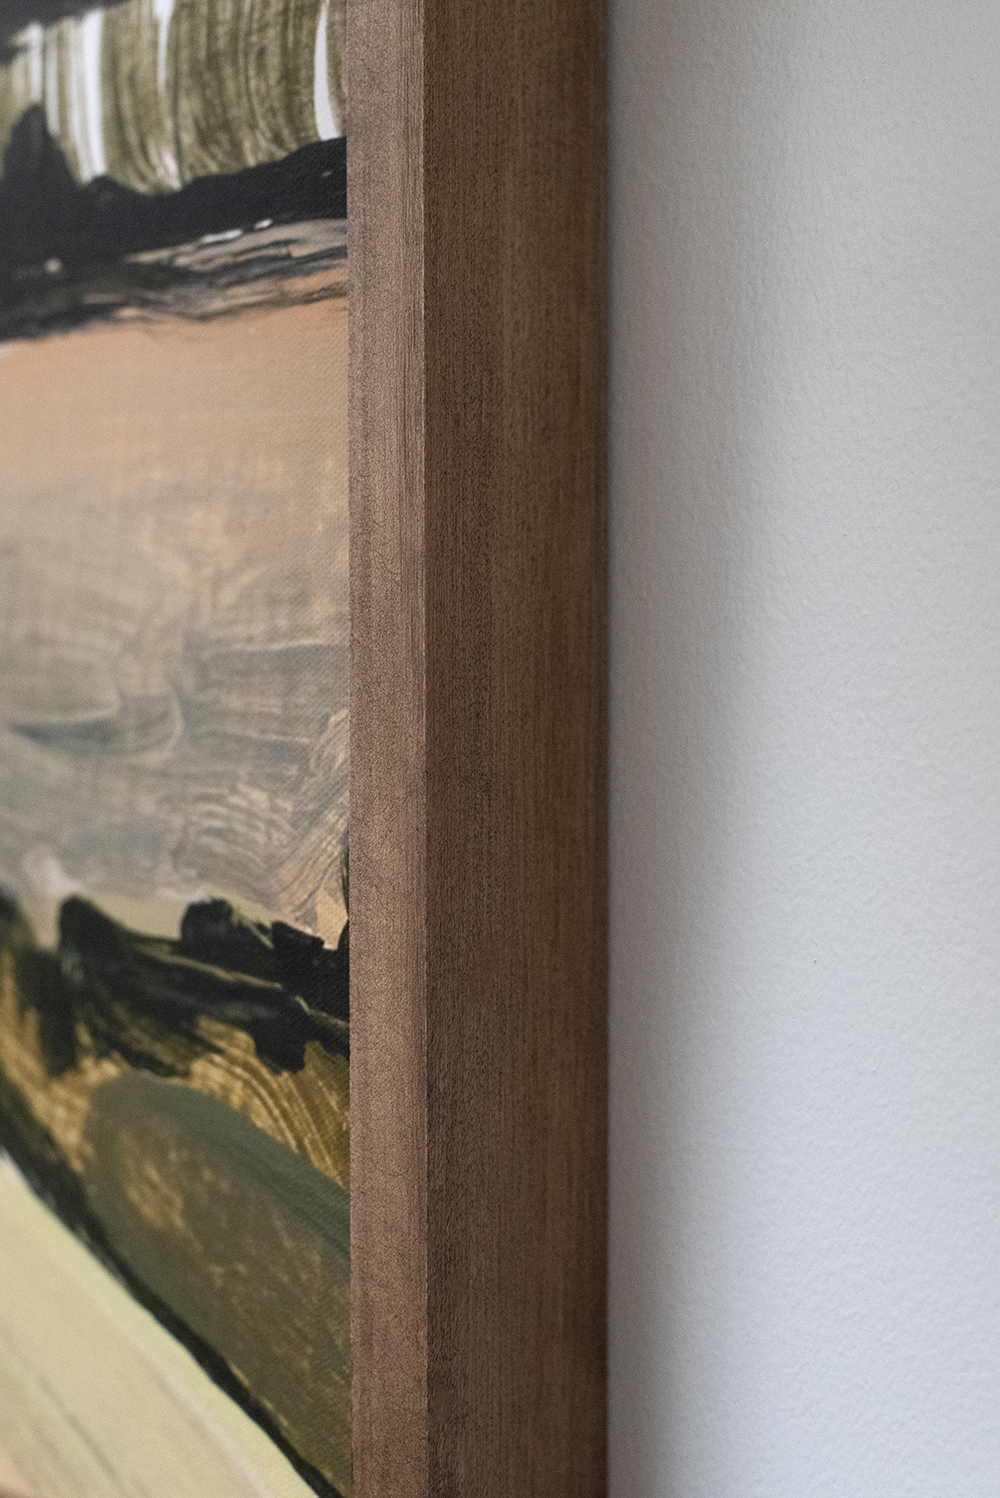 How to Use Gel Stain (A Frame Tutorial) - roomfortuesday.com